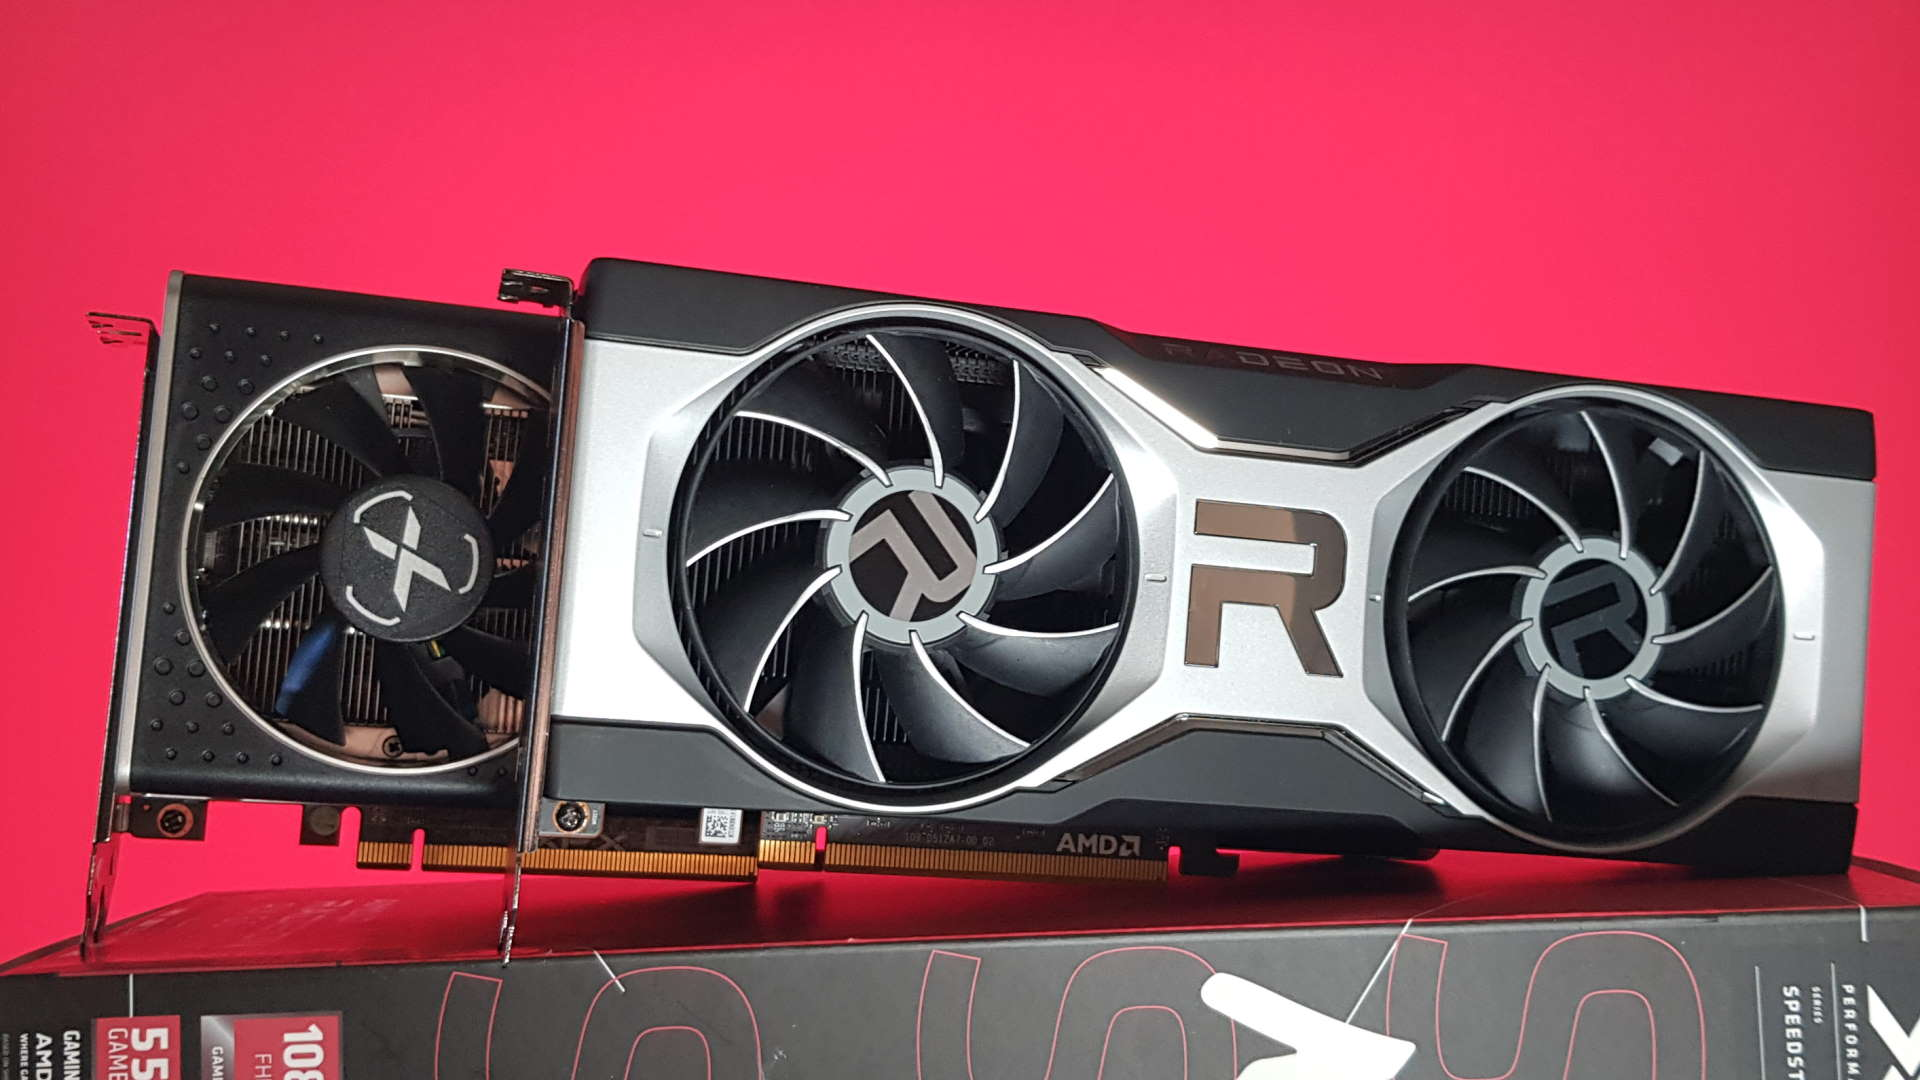 XFX Radeon RX 6600 XT and AMD RX 6700 XT graphics cards